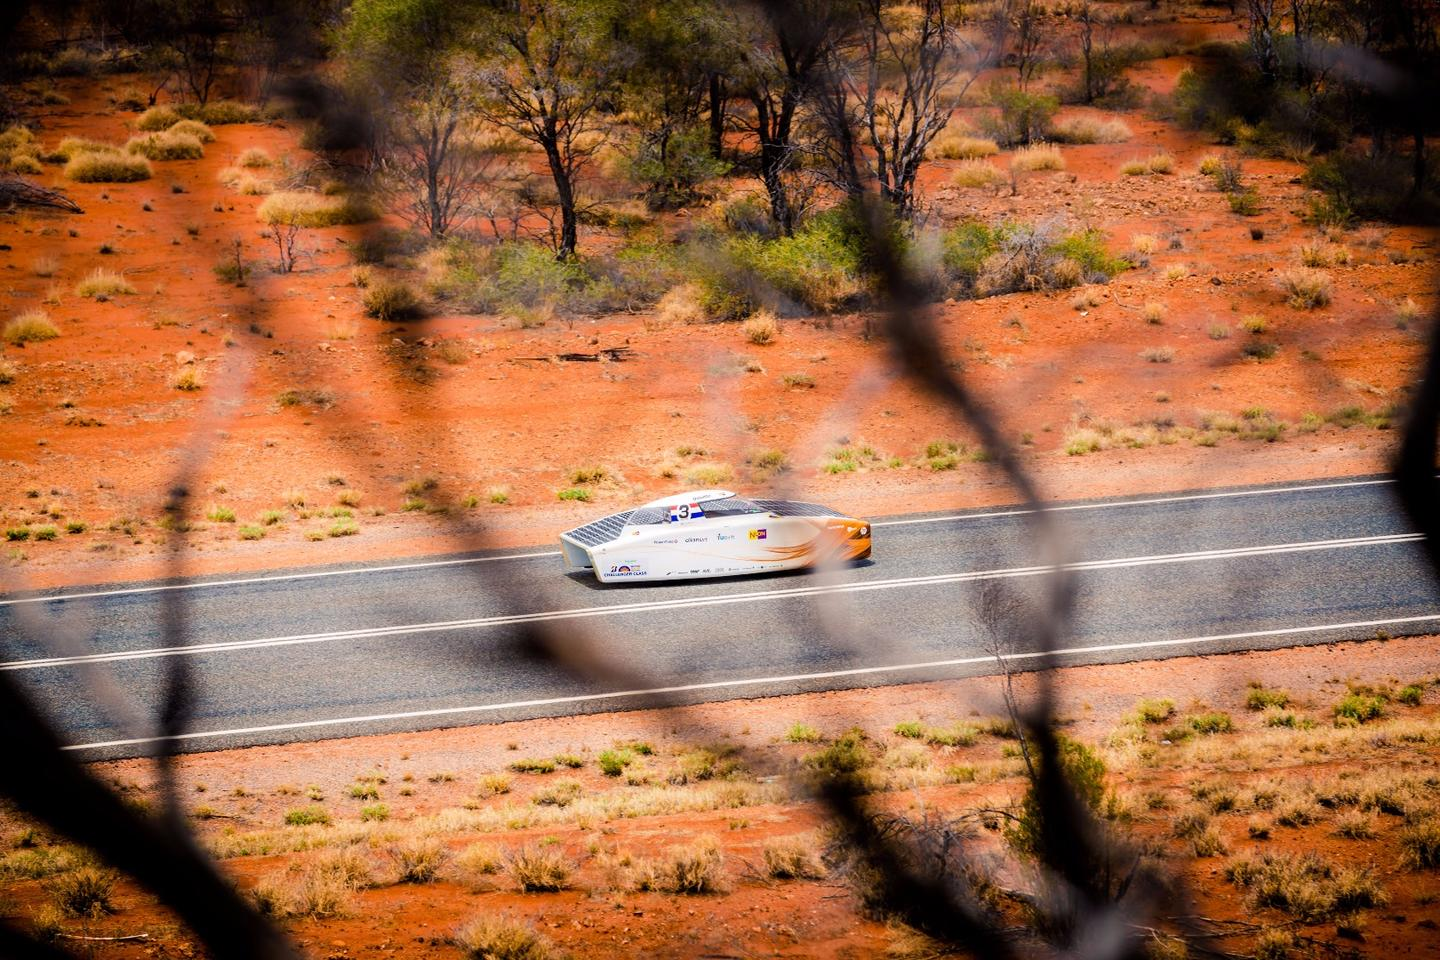 The Nuon Solar Team's Nuna9 car in action during the World Solar Challenge